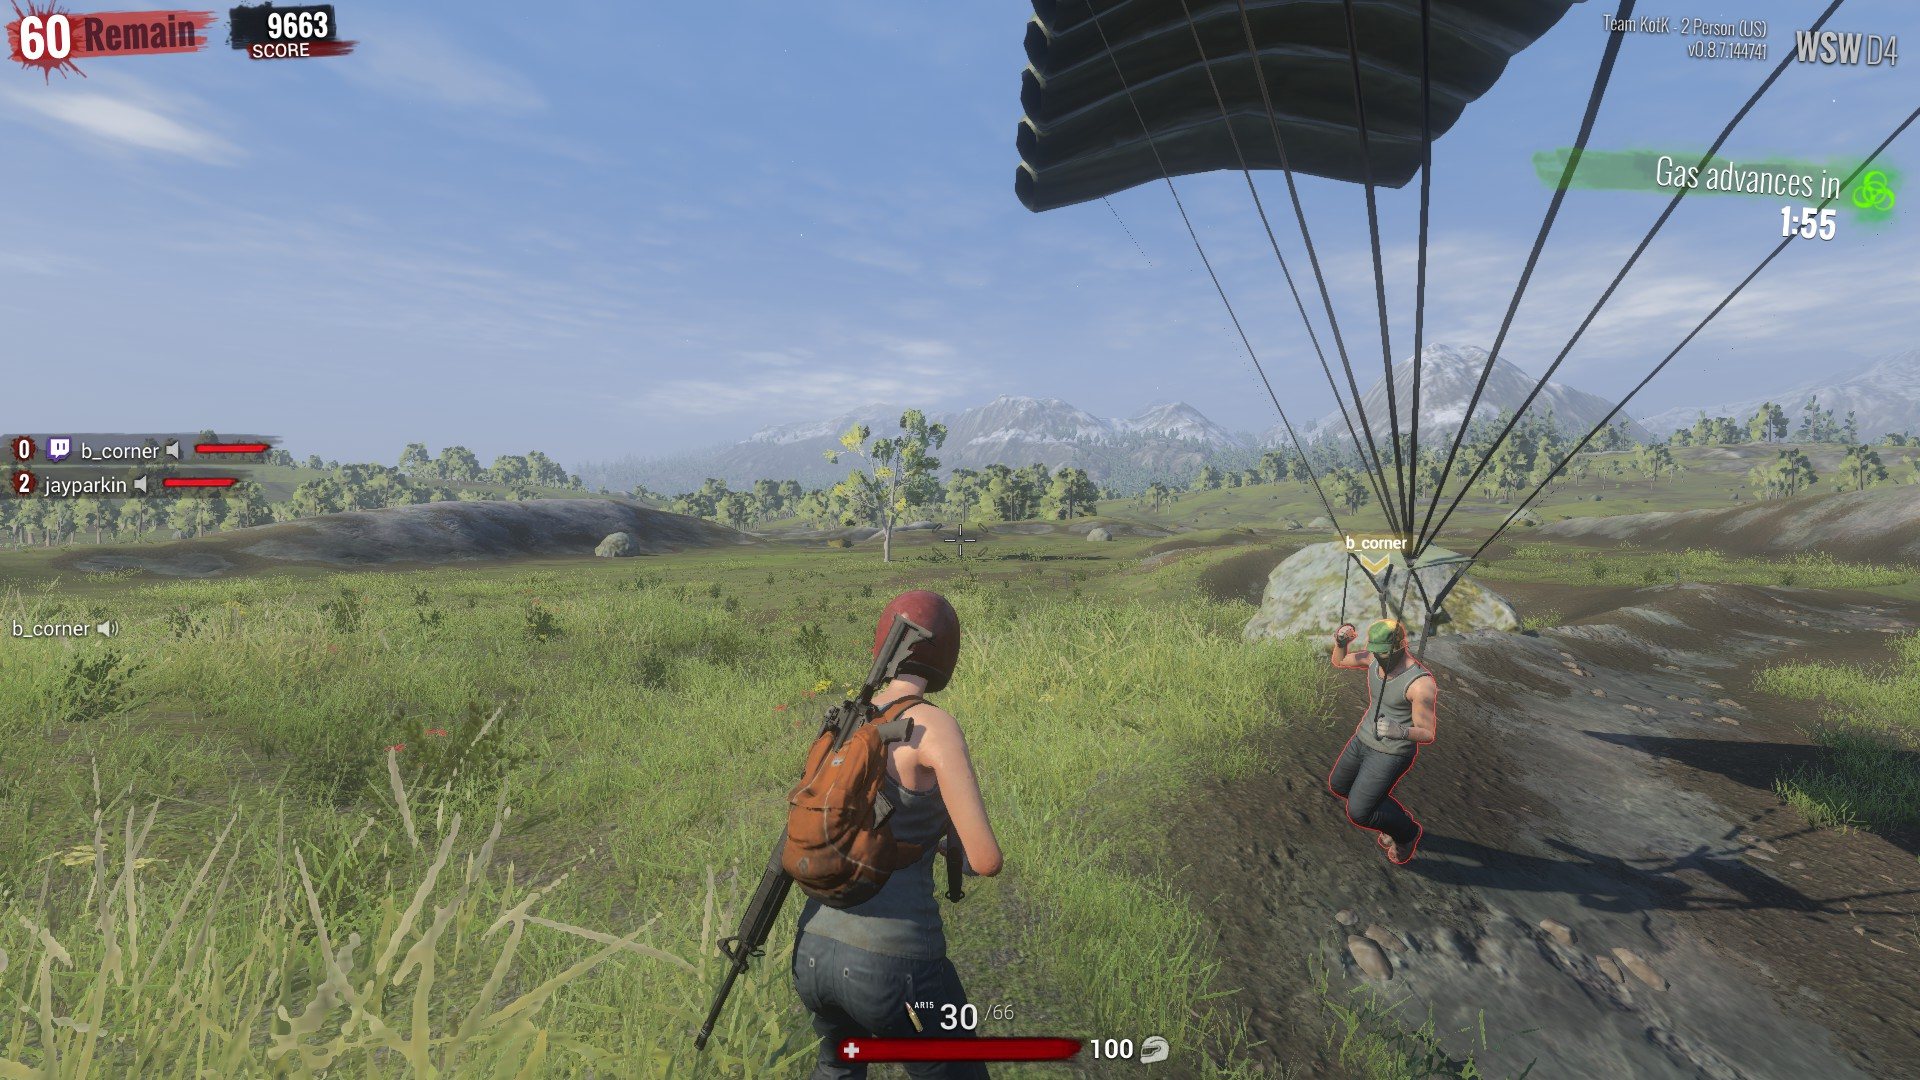 H1z1 King Of The Kill Review Extreme Wilderness